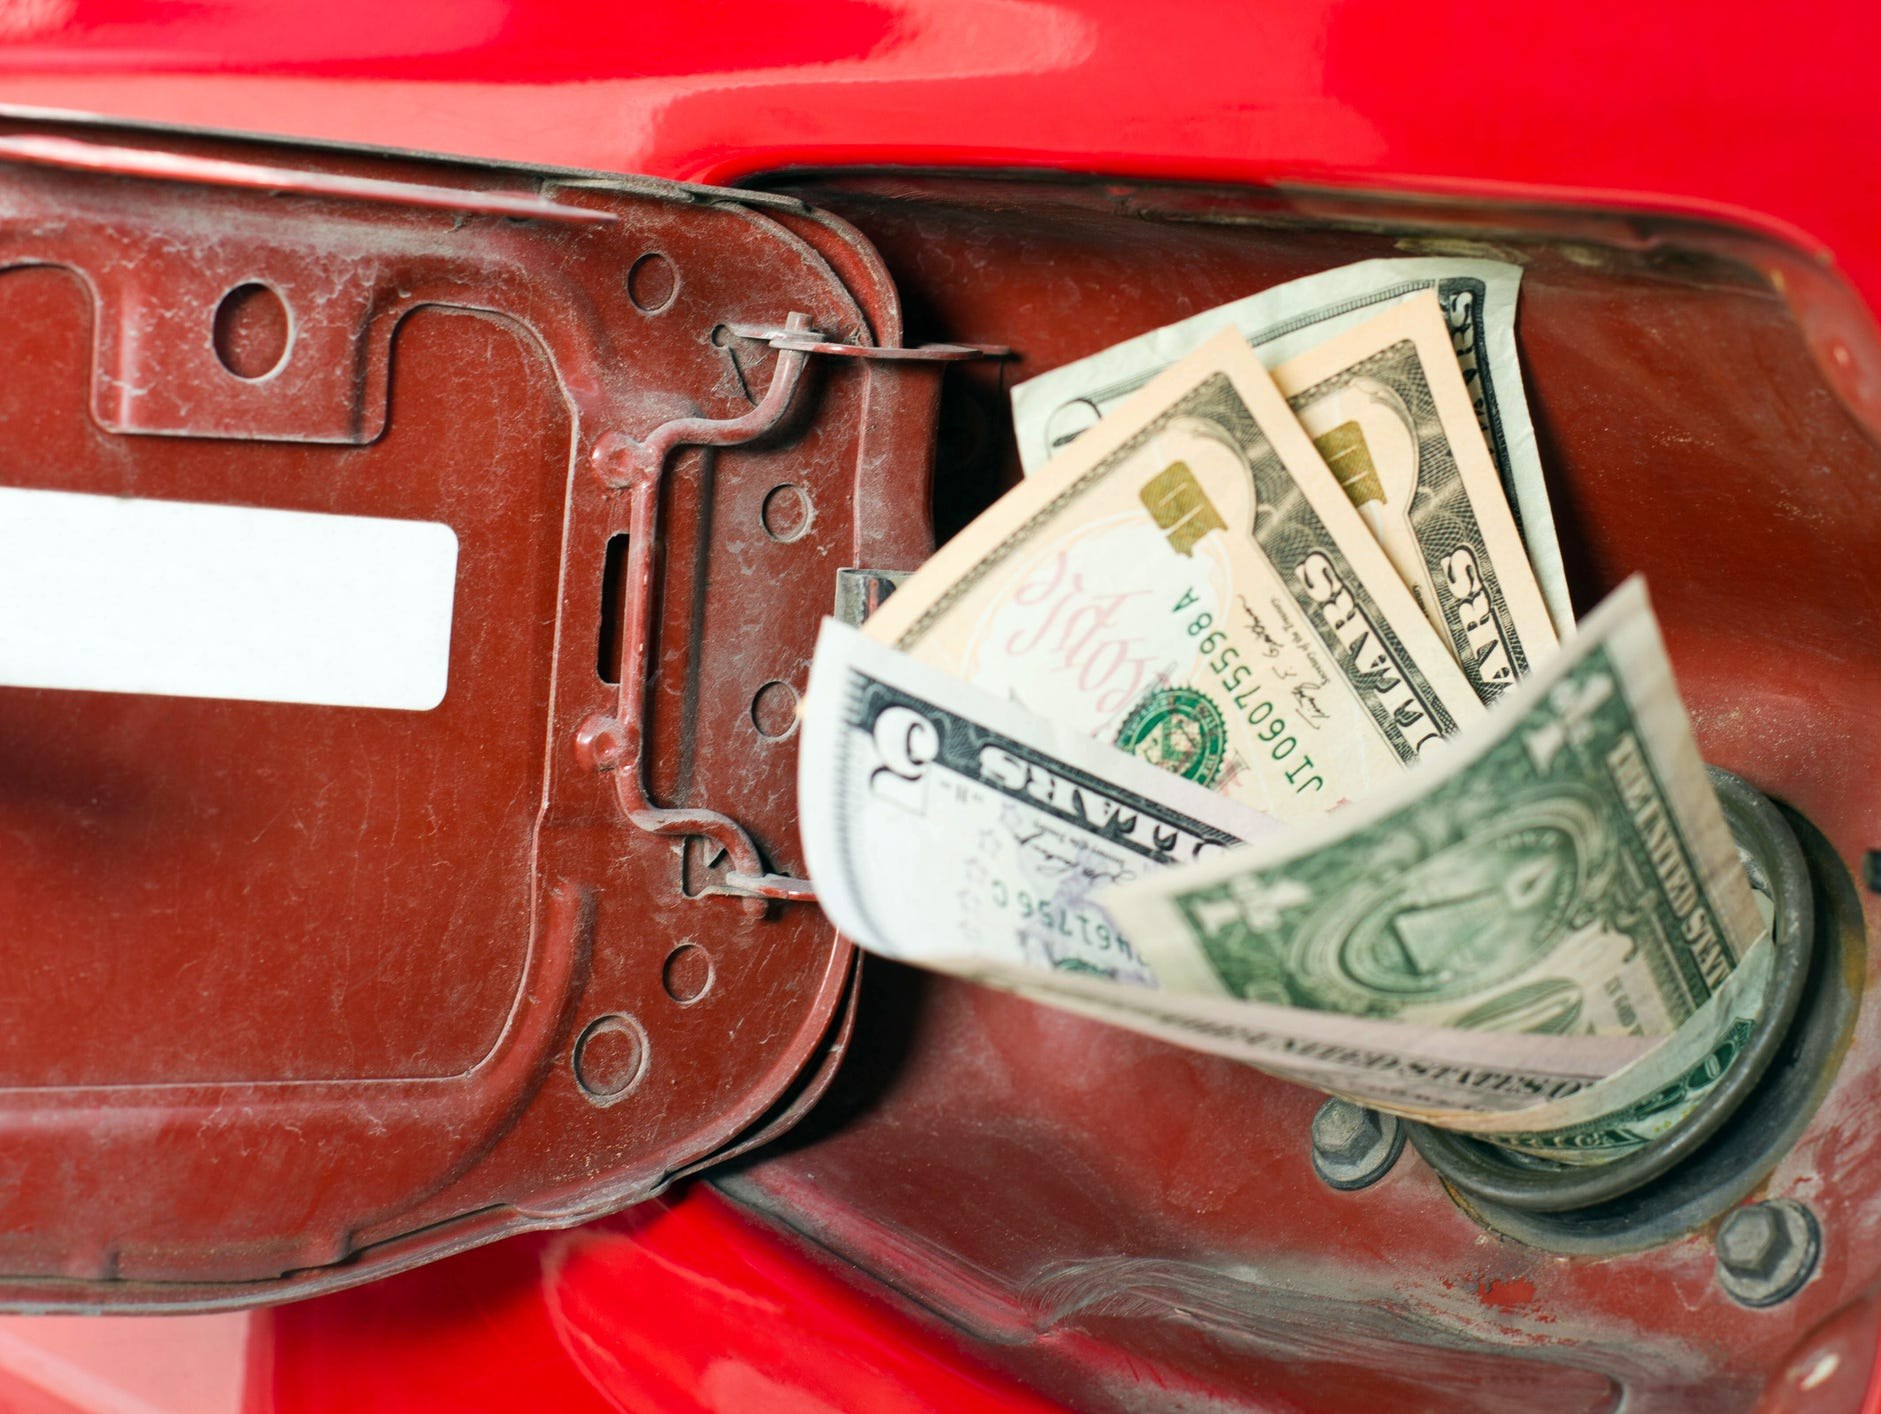 Fill up your tank on the Journal Sentinel's dime. Enter to win through 3/27.